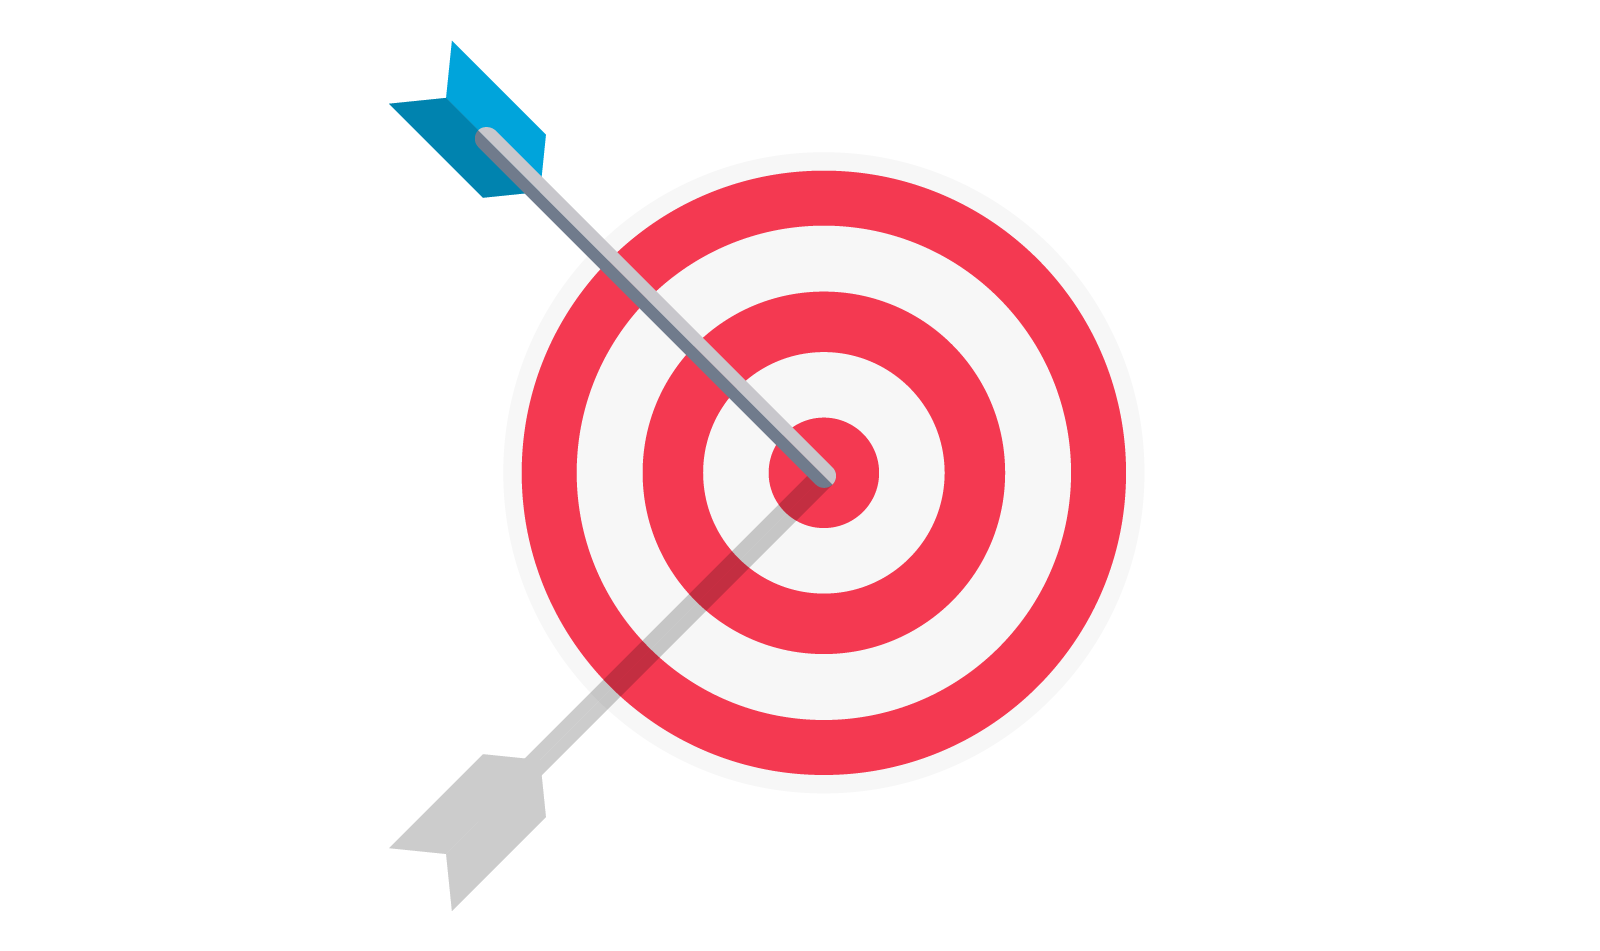 Illustration of arrow on target